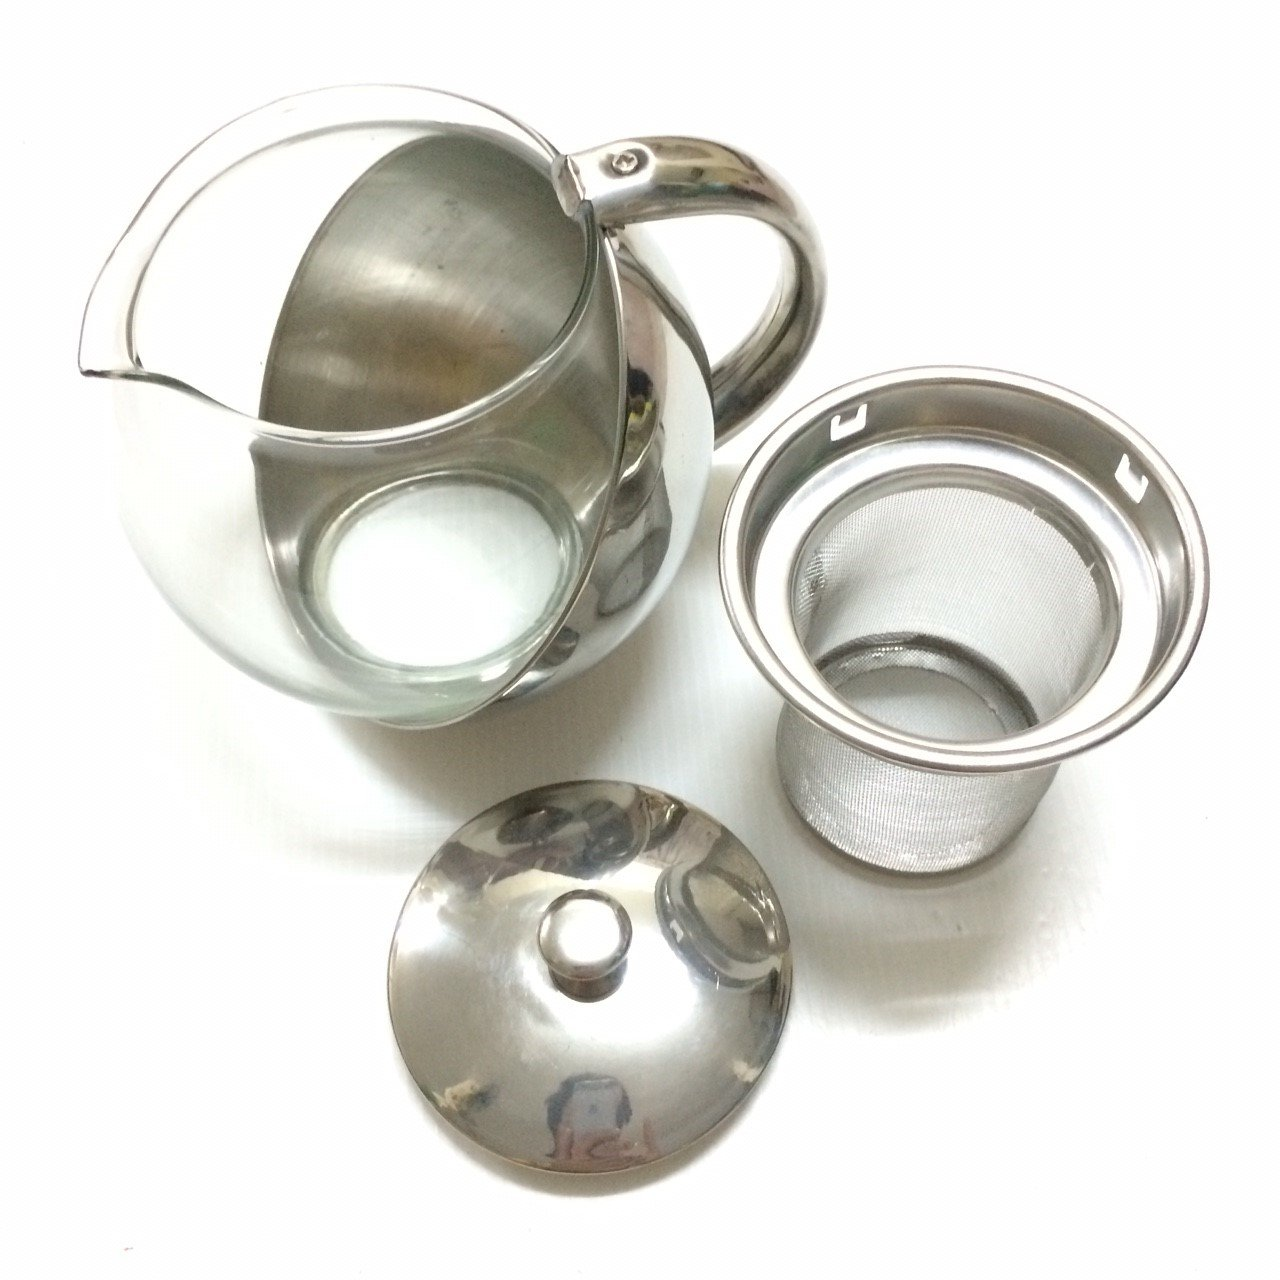 Half-Moon Teapot and Tea Strainer Set & Lid Teapot Kettle Kitchen Dining 25.36 oz. by Pisana1979 (Image #6)